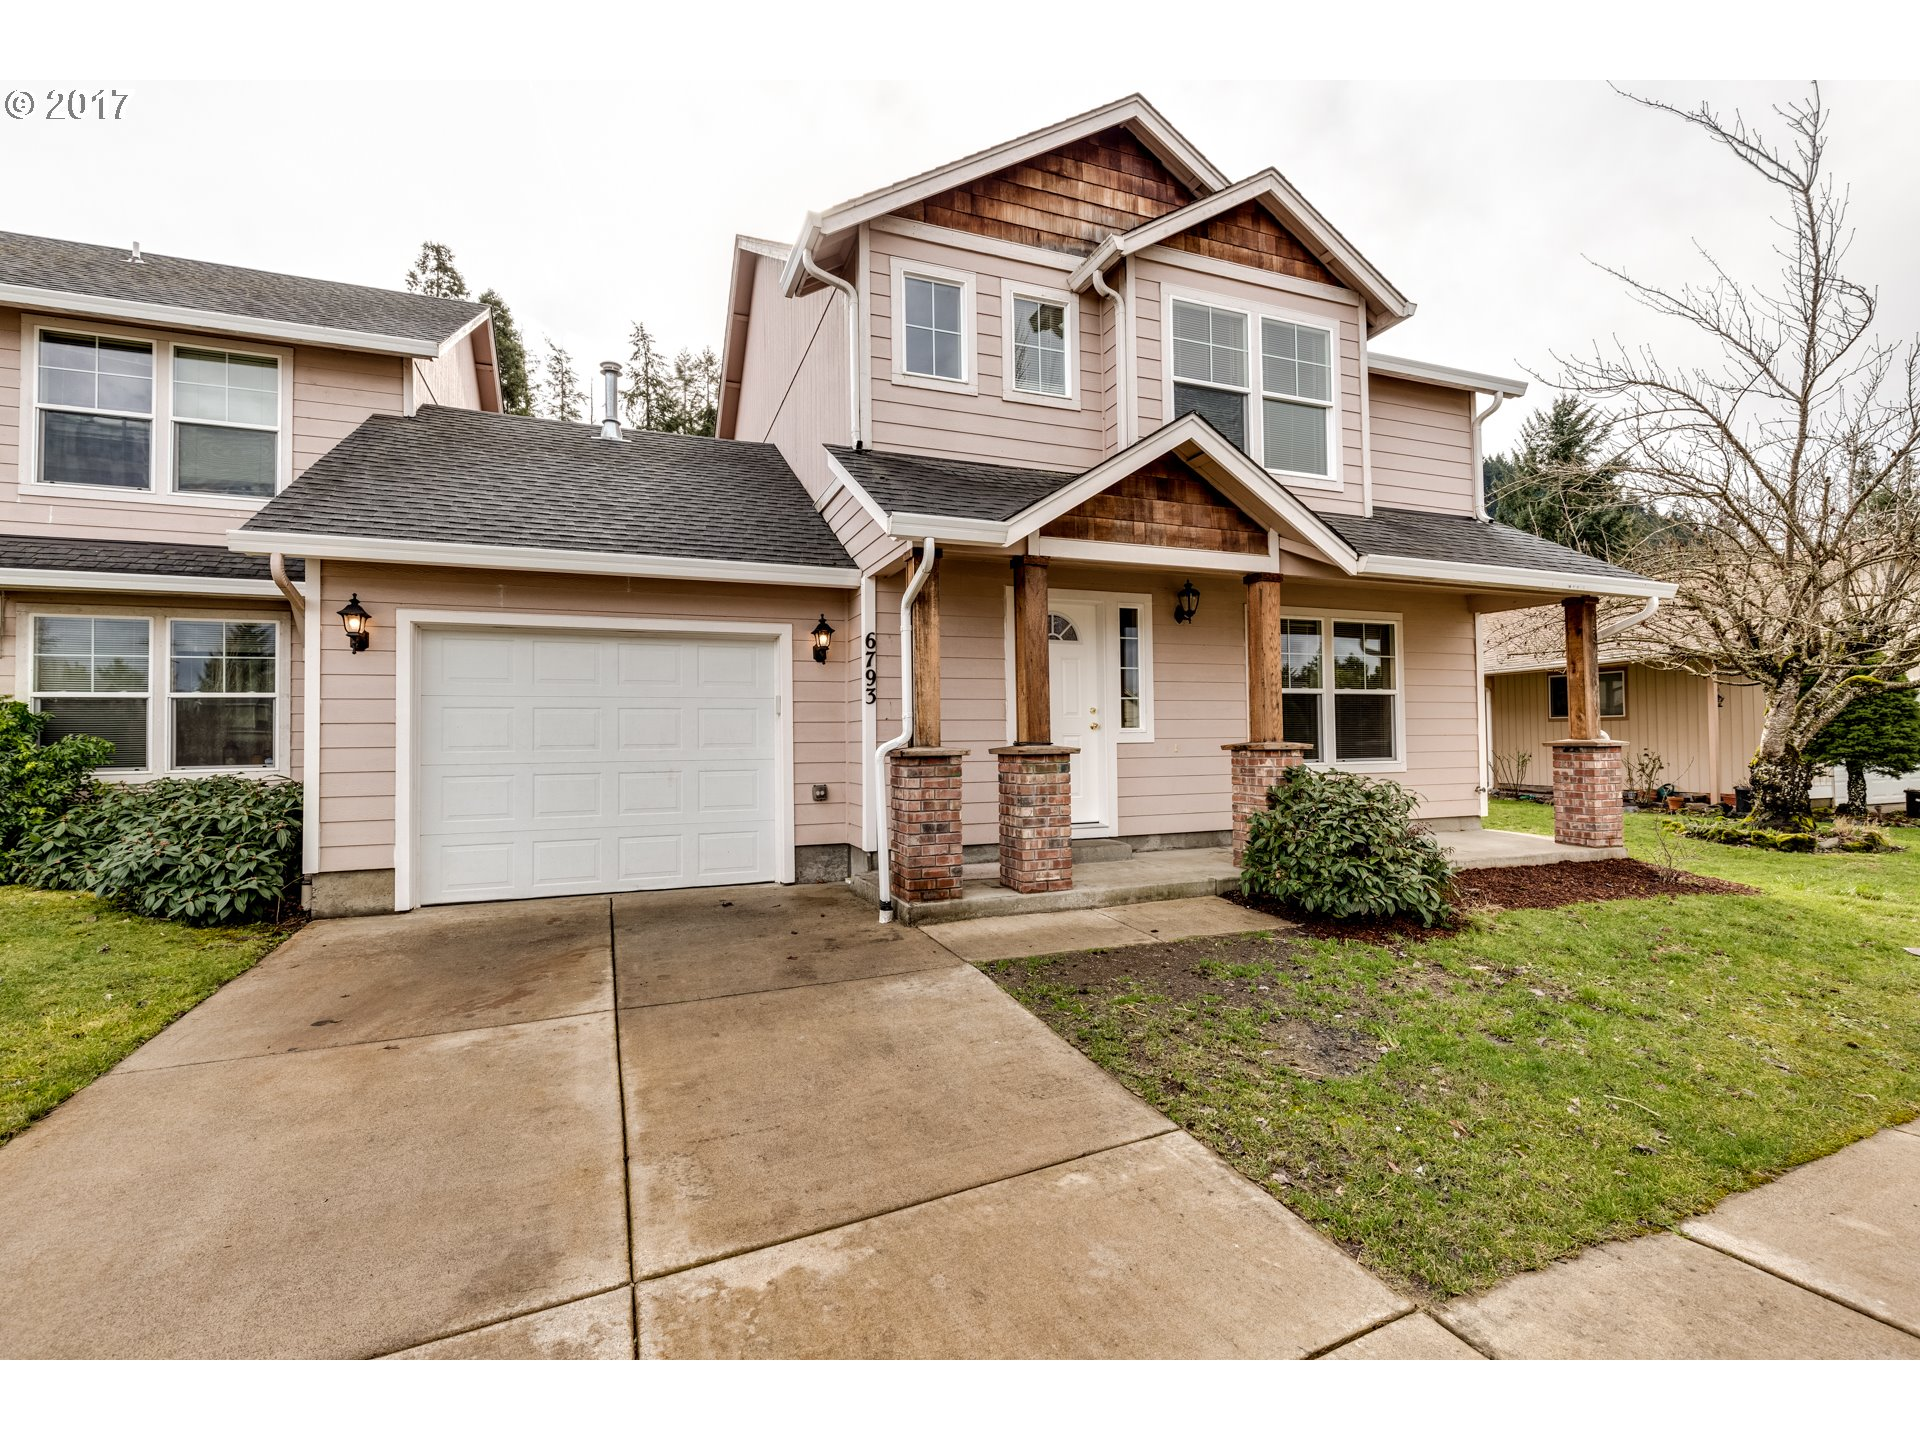 208 S 67TH CT, Springfield, OR 97478